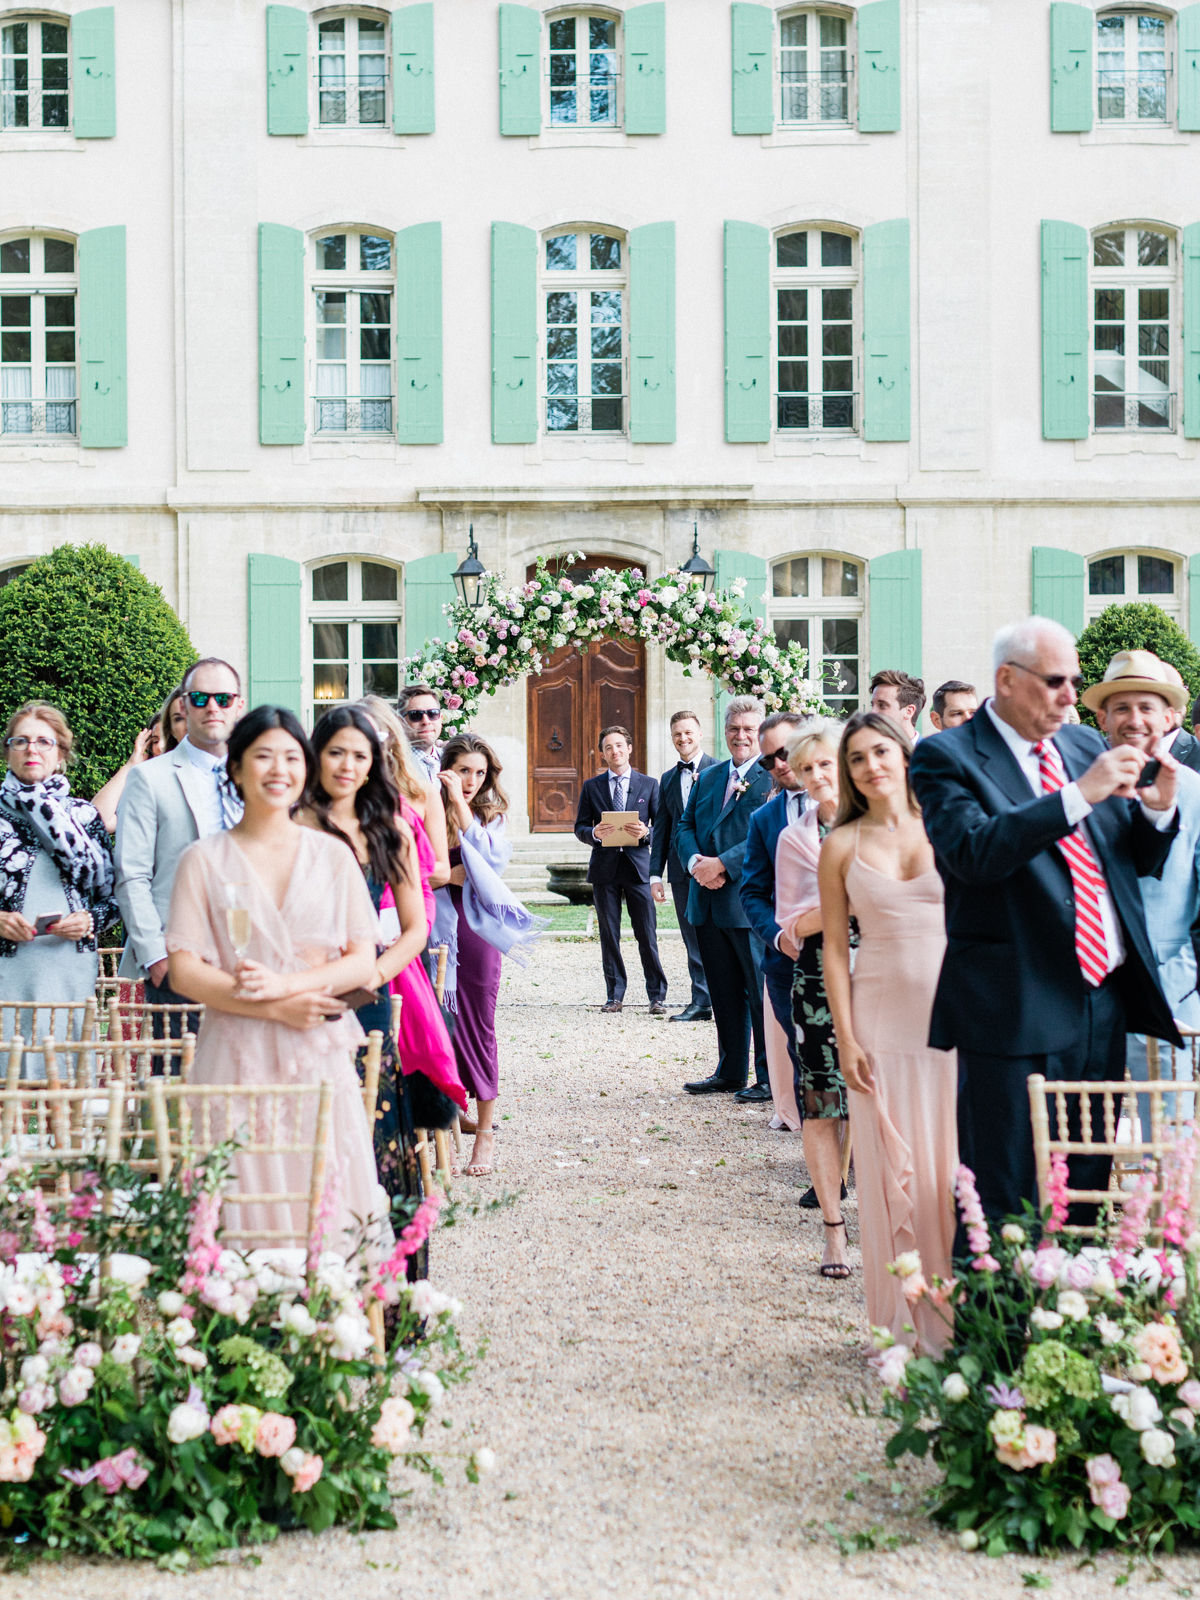 Chateau_de_Tourreau_Provence_Wedding_(c)_Rory_Wylie_.jpg-86.jpg